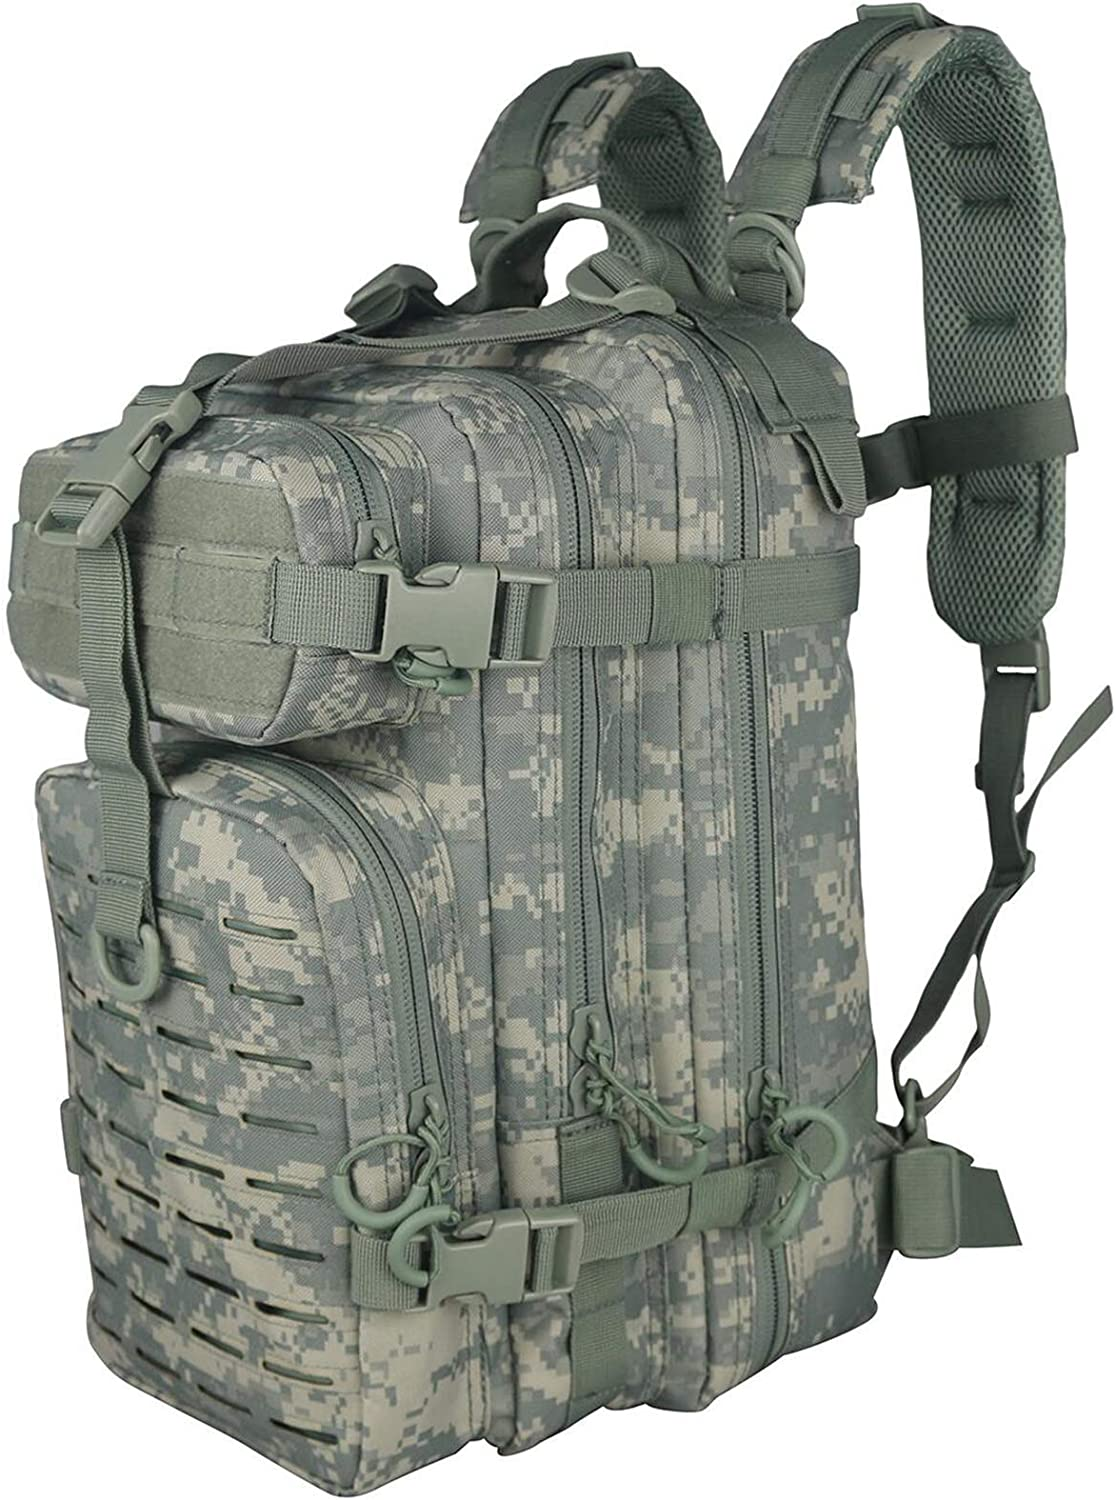 X&X Hiking Daypacks Hydration Pack Tactical Backpack Waterproof for Outdoor Travel Camping School (Bladder no Included)ACU